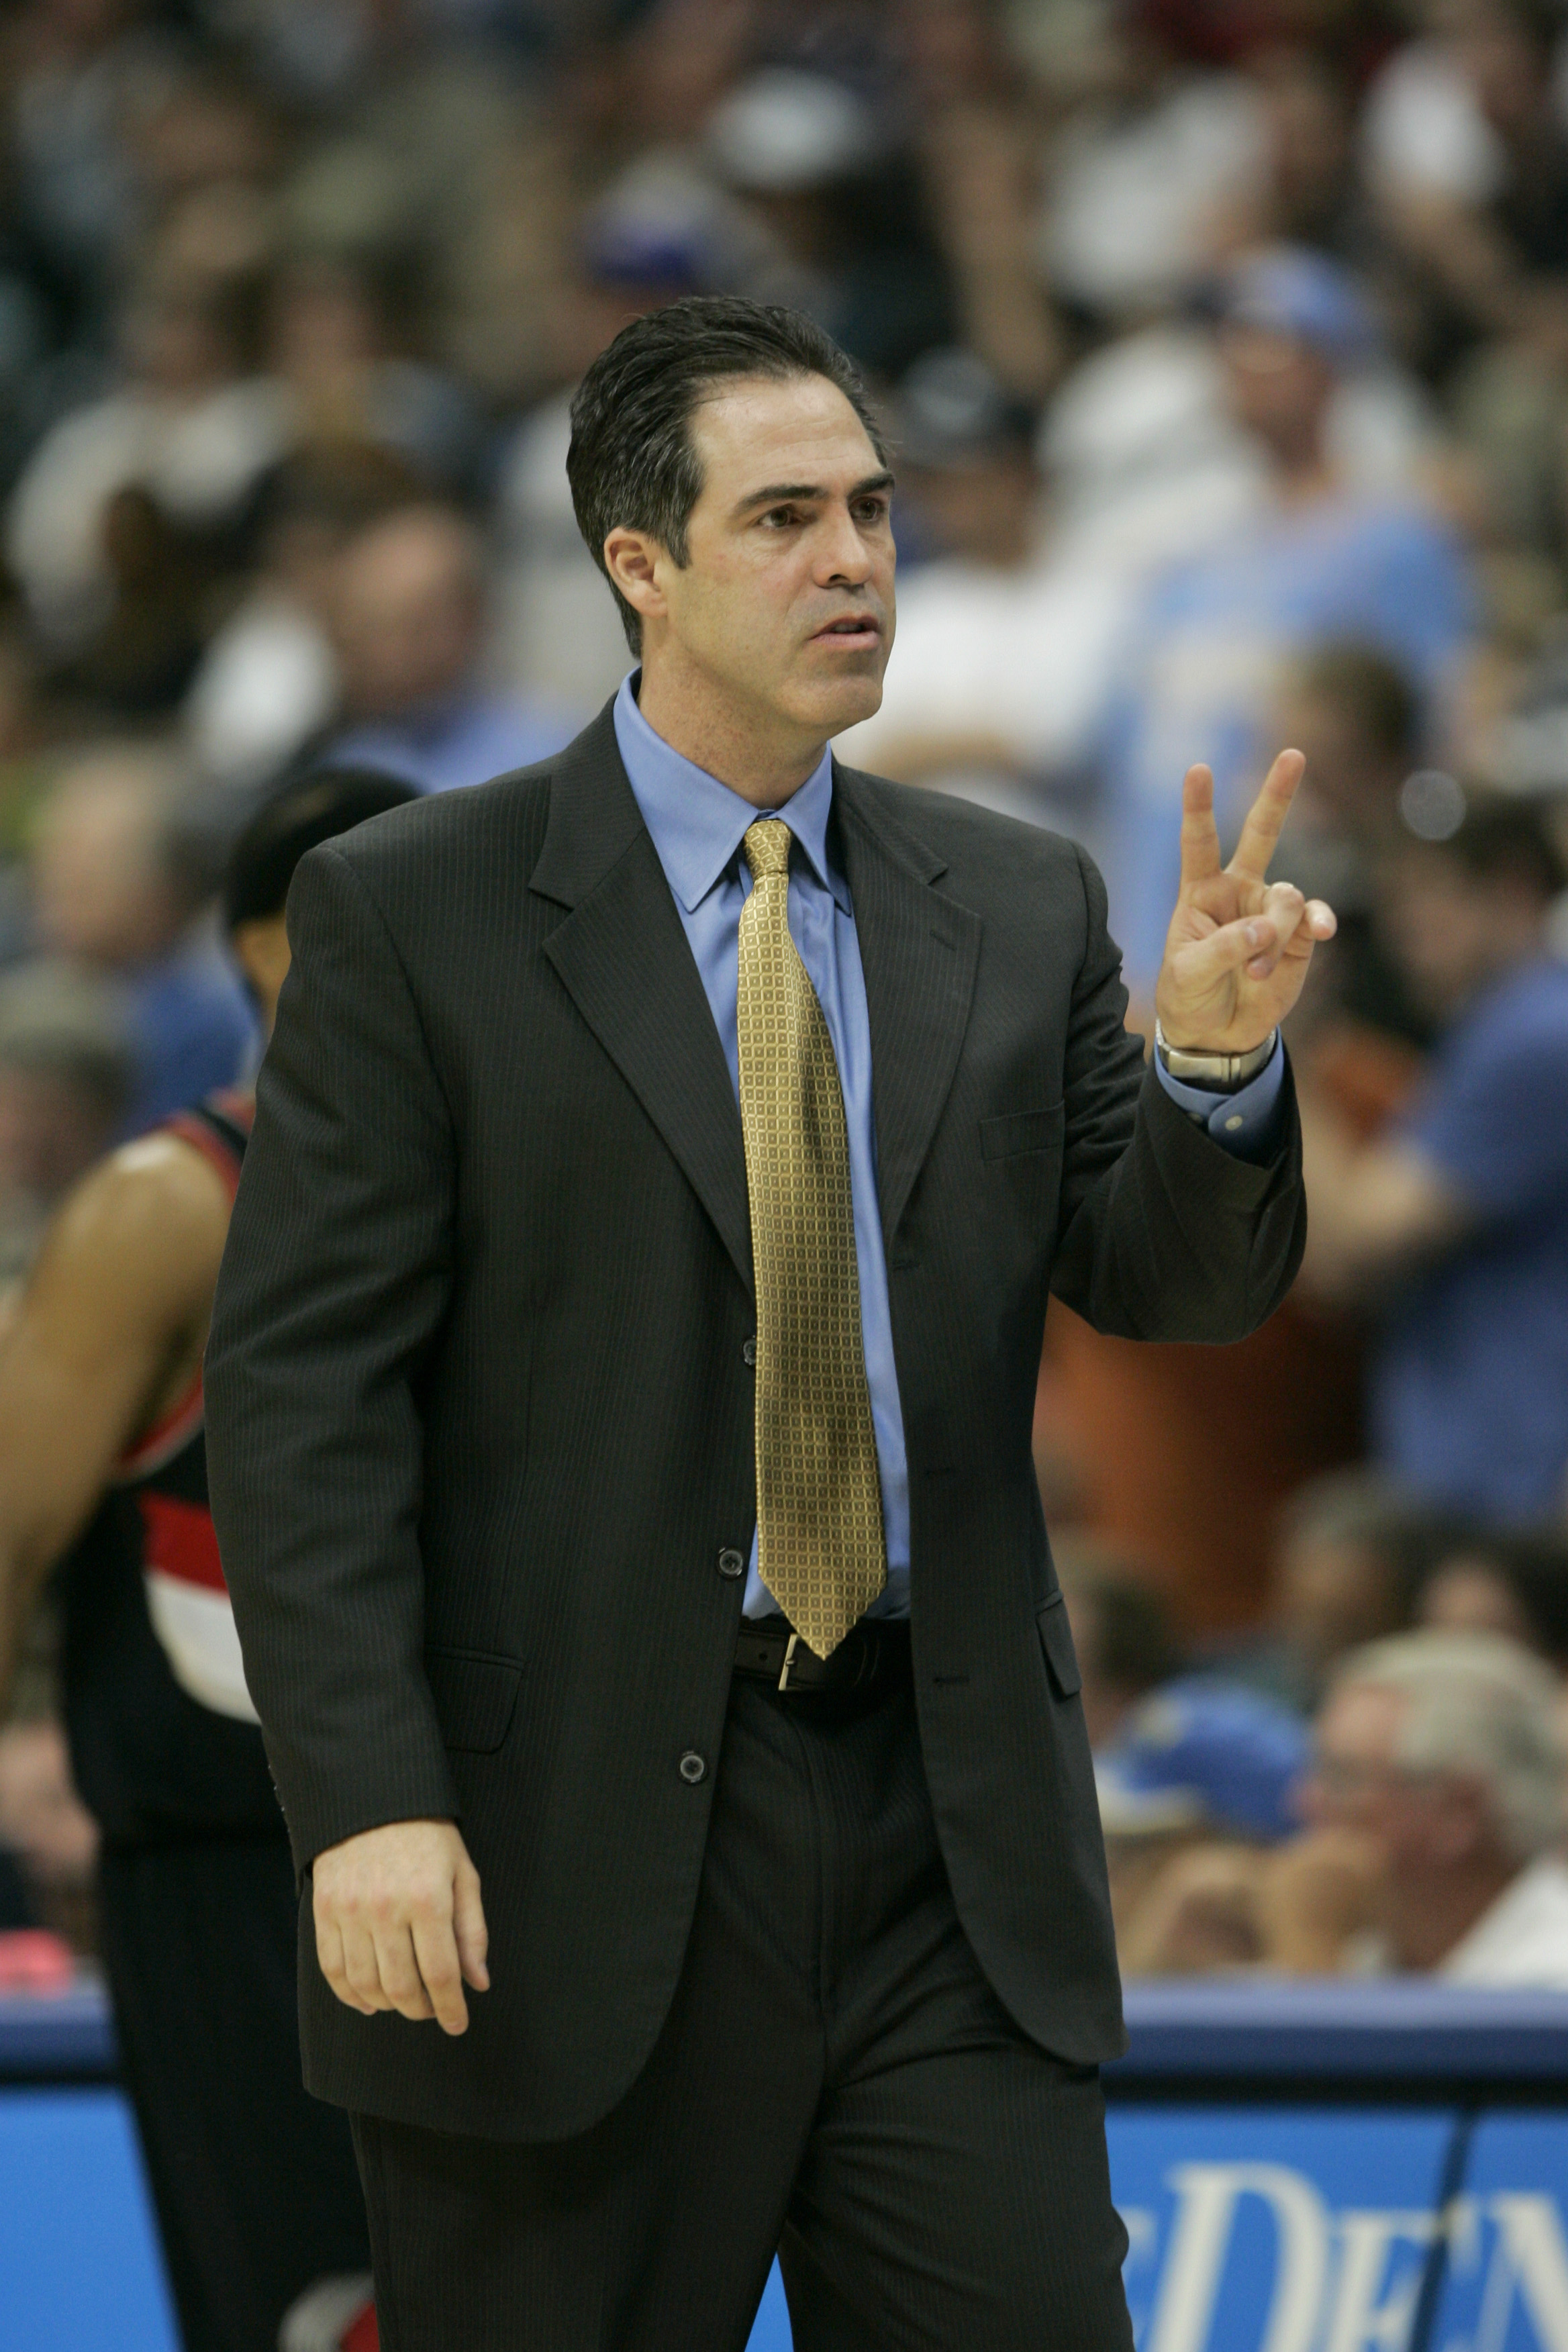 DENVER - APRIL 19:  Head coach Kevin Pritchard of the Denver Nuggets reacts during the game against the Portland Trail Blazers on April 19, 2005 at the Pepsi Center in Denver, Colorado.   The Nuggets won 119-115. NOTE TO USER: User expressly acknowledges